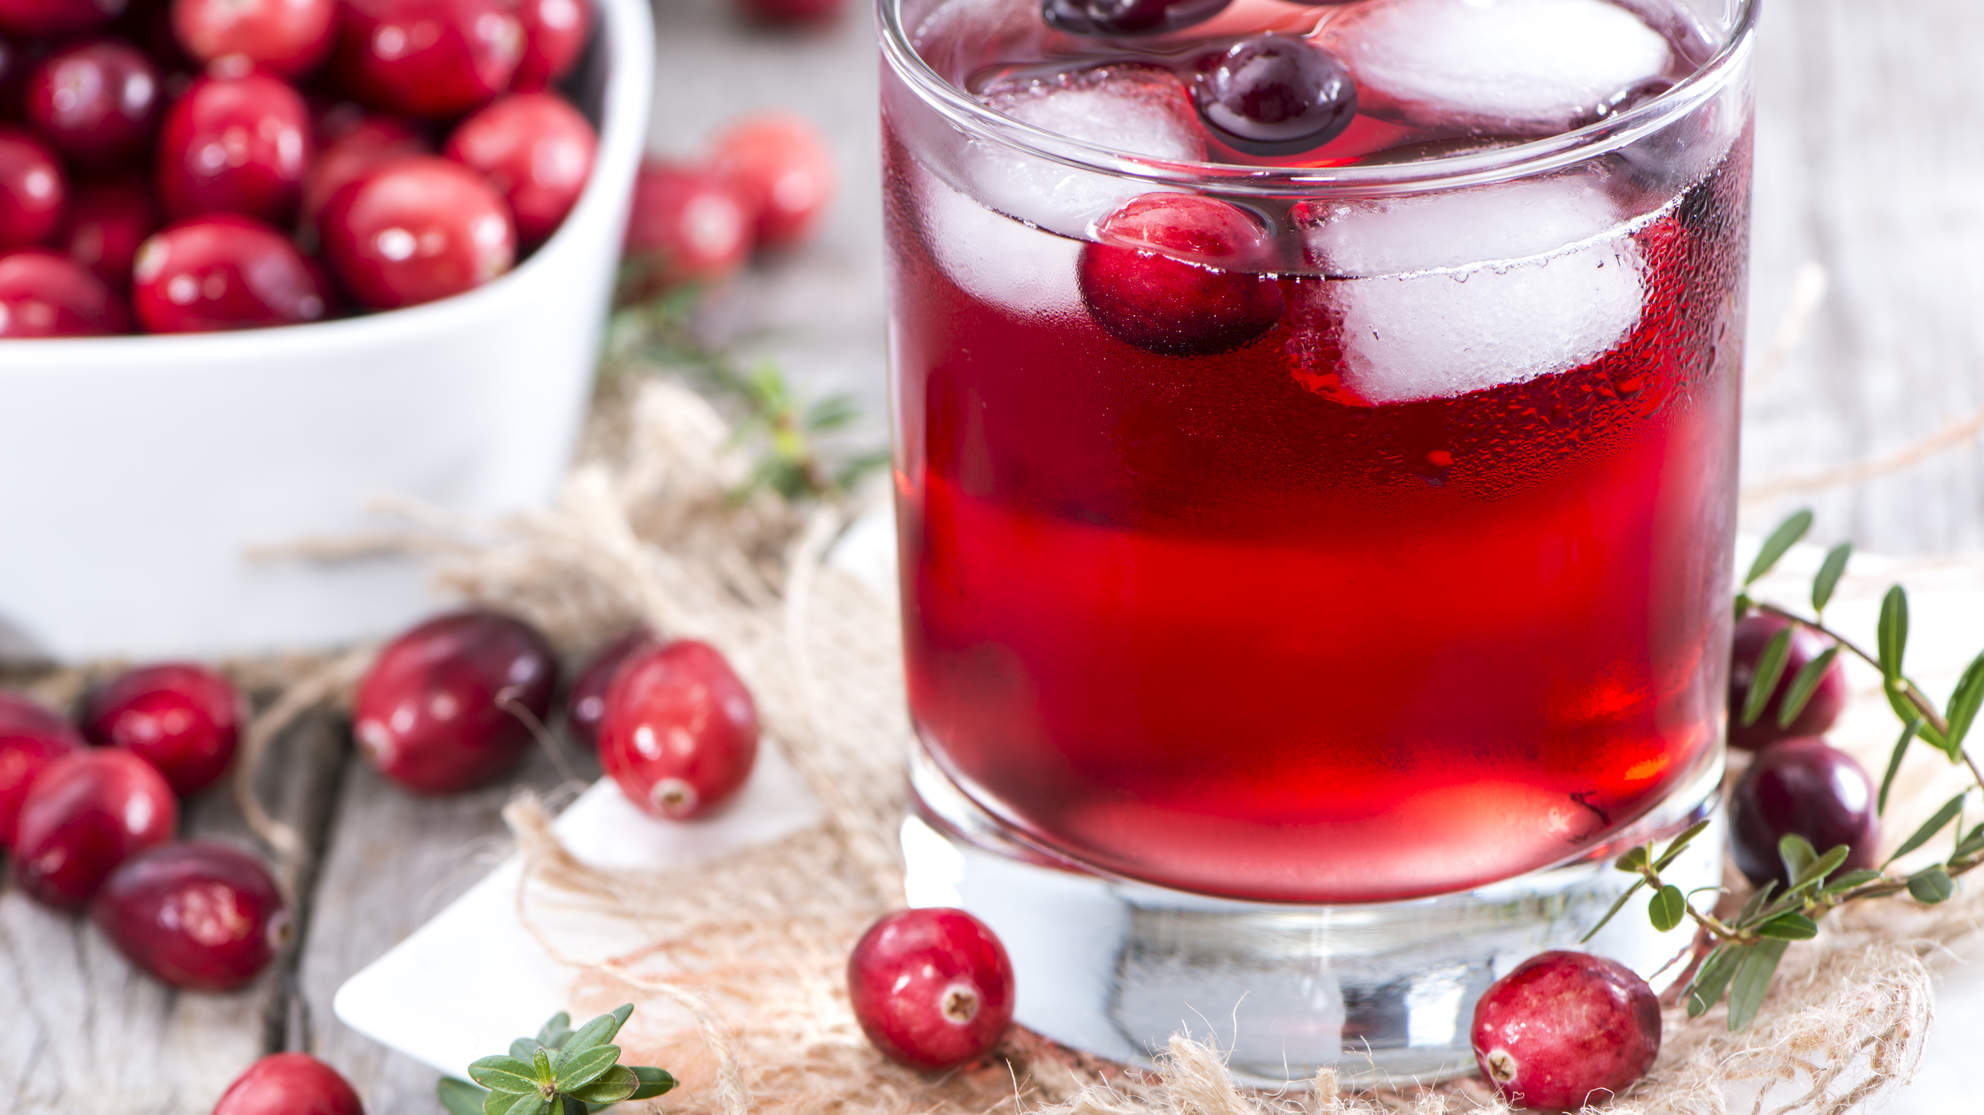 The Case for Cranberries to Fight aUTIJust Got a Whole Lot Stronger